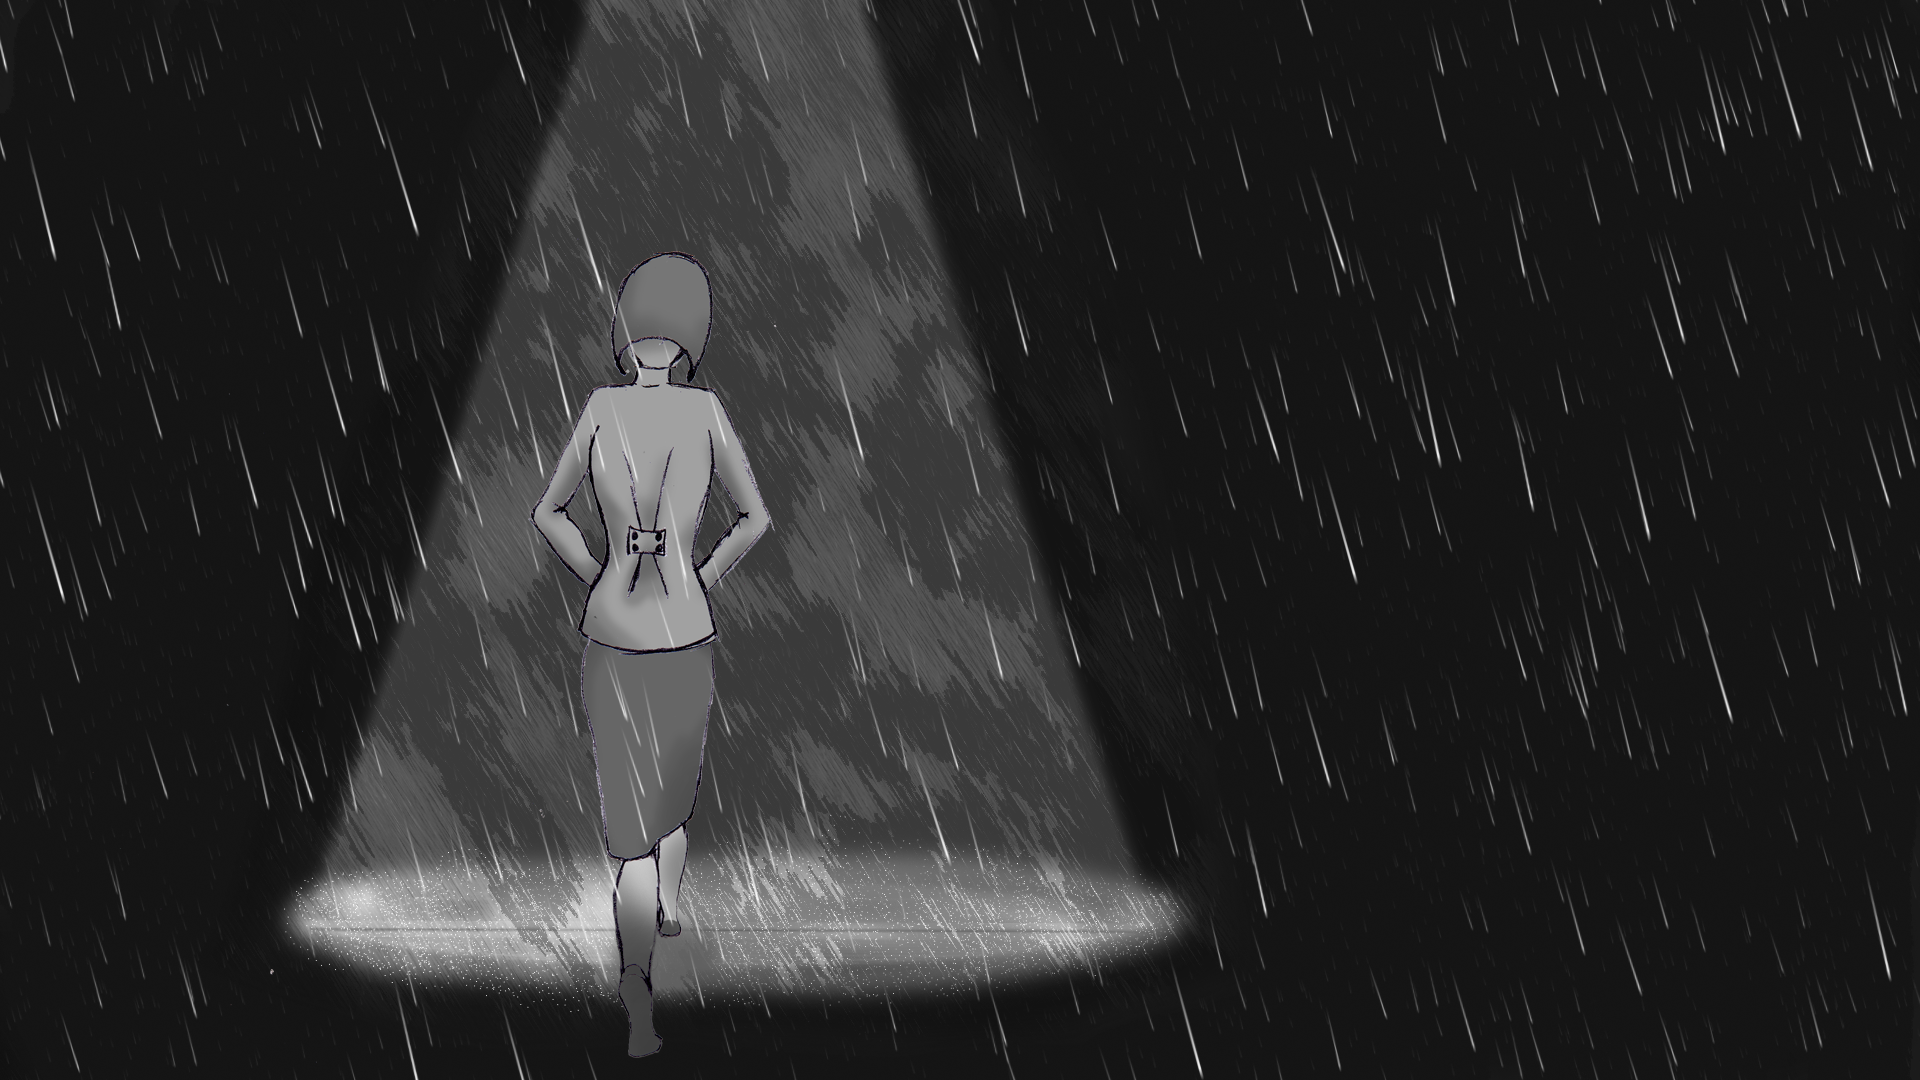 In the Rain - image 10 - student project